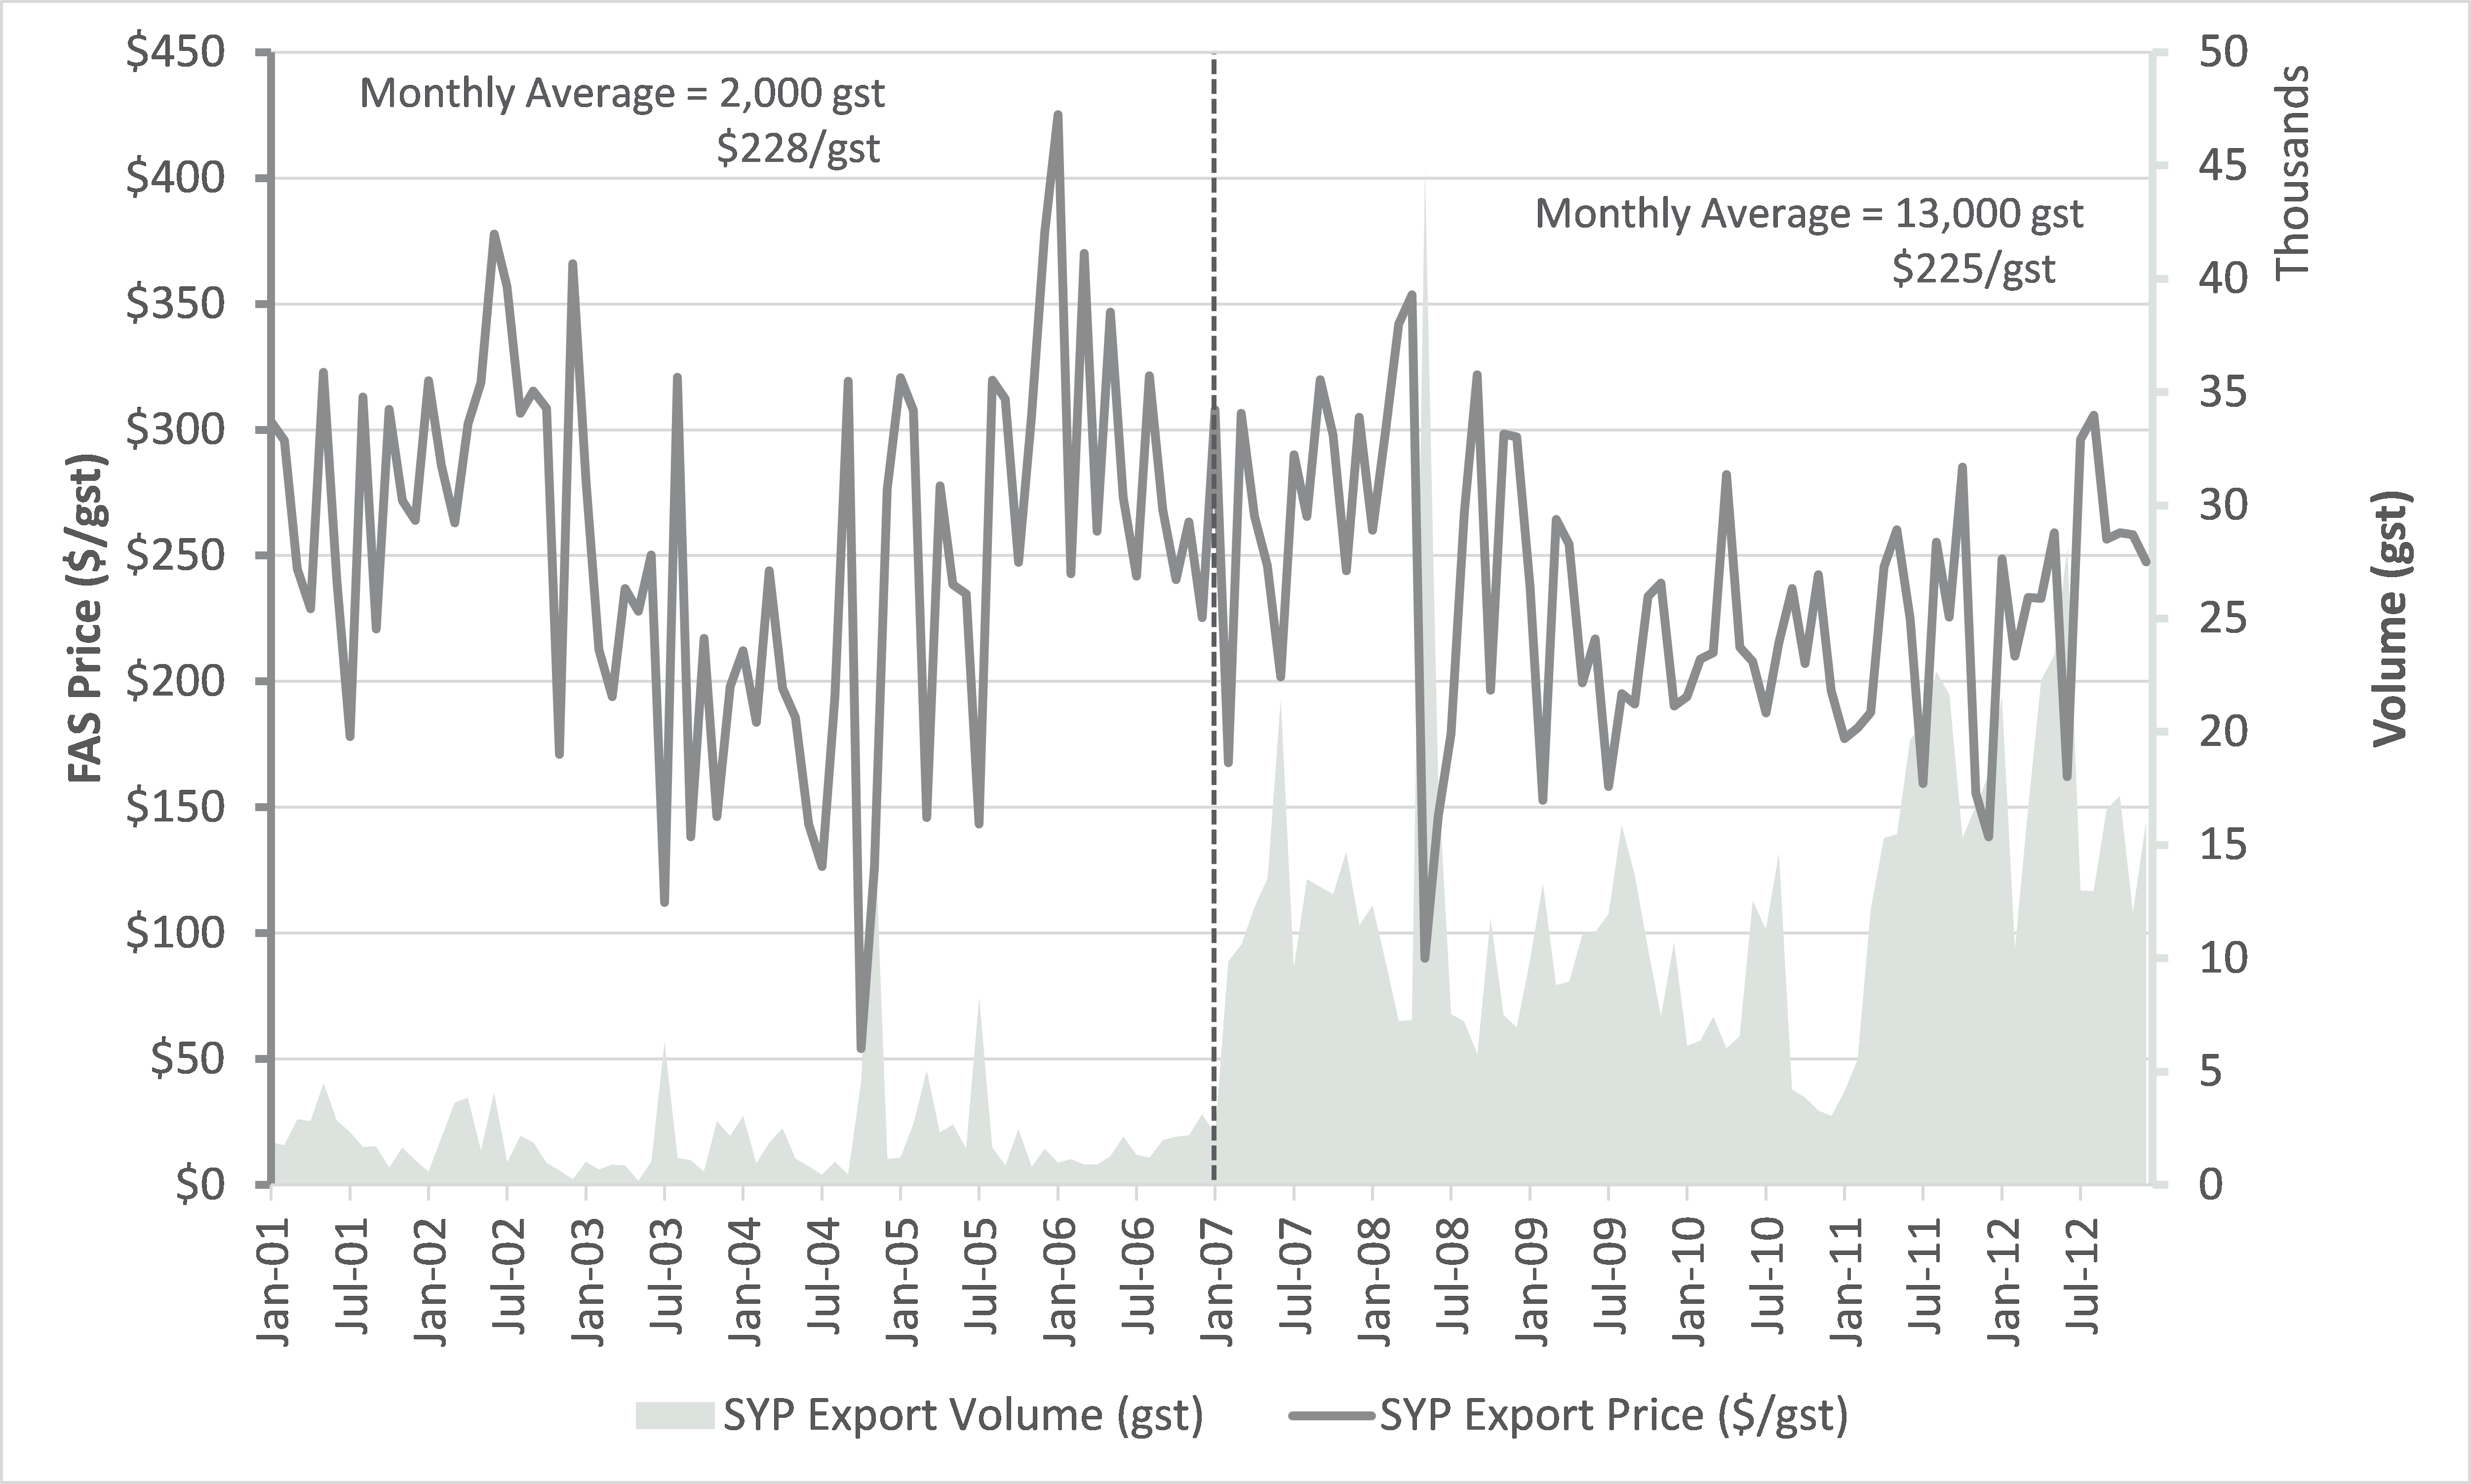 Southern Yellow Pine Log Exports: An Historical Analysis